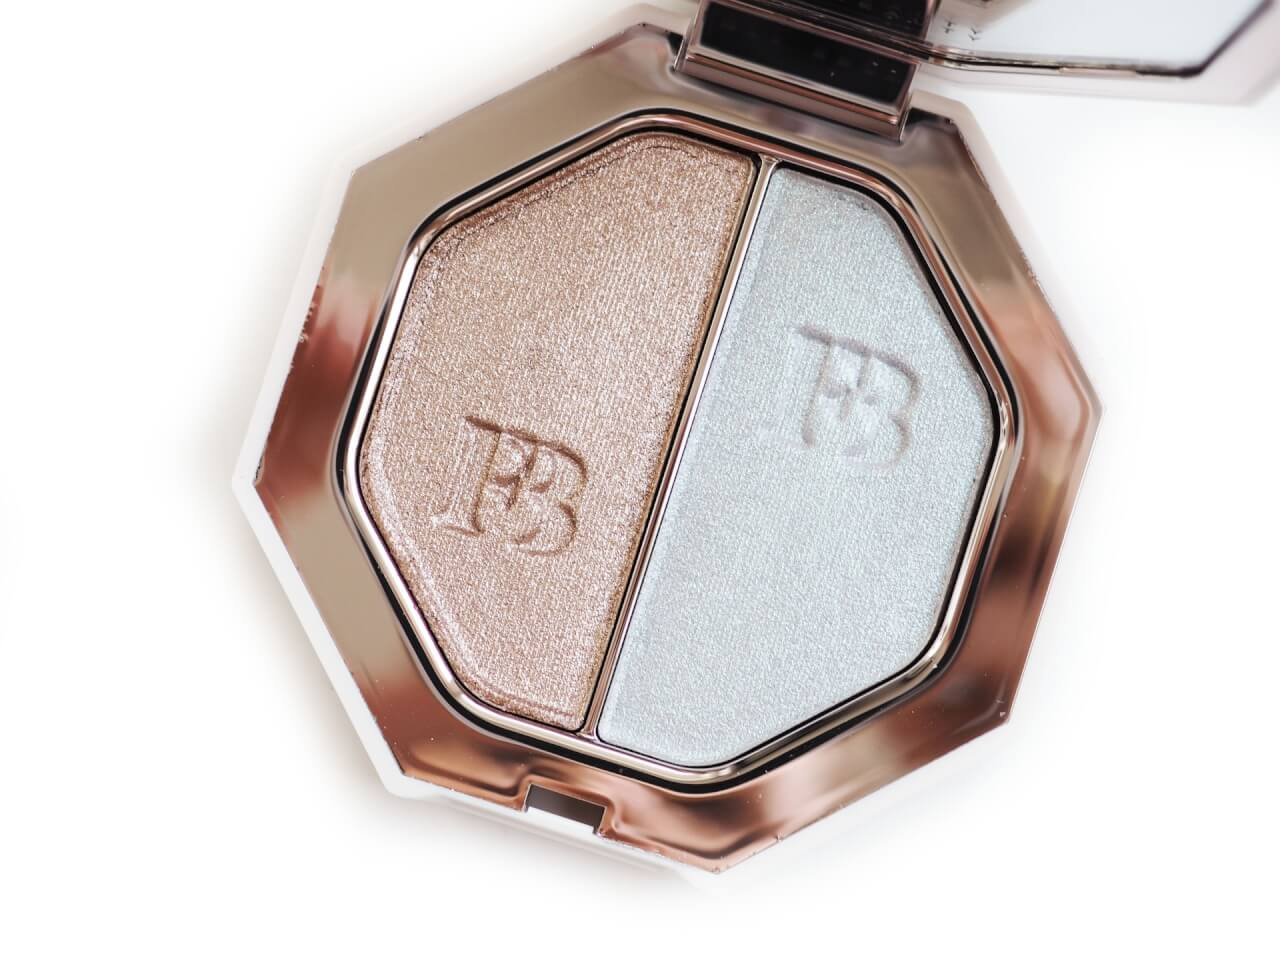 Fenty Beauty Sand Castle/Mint'd Mojito Killawatt Foil Freestyle Highlighter